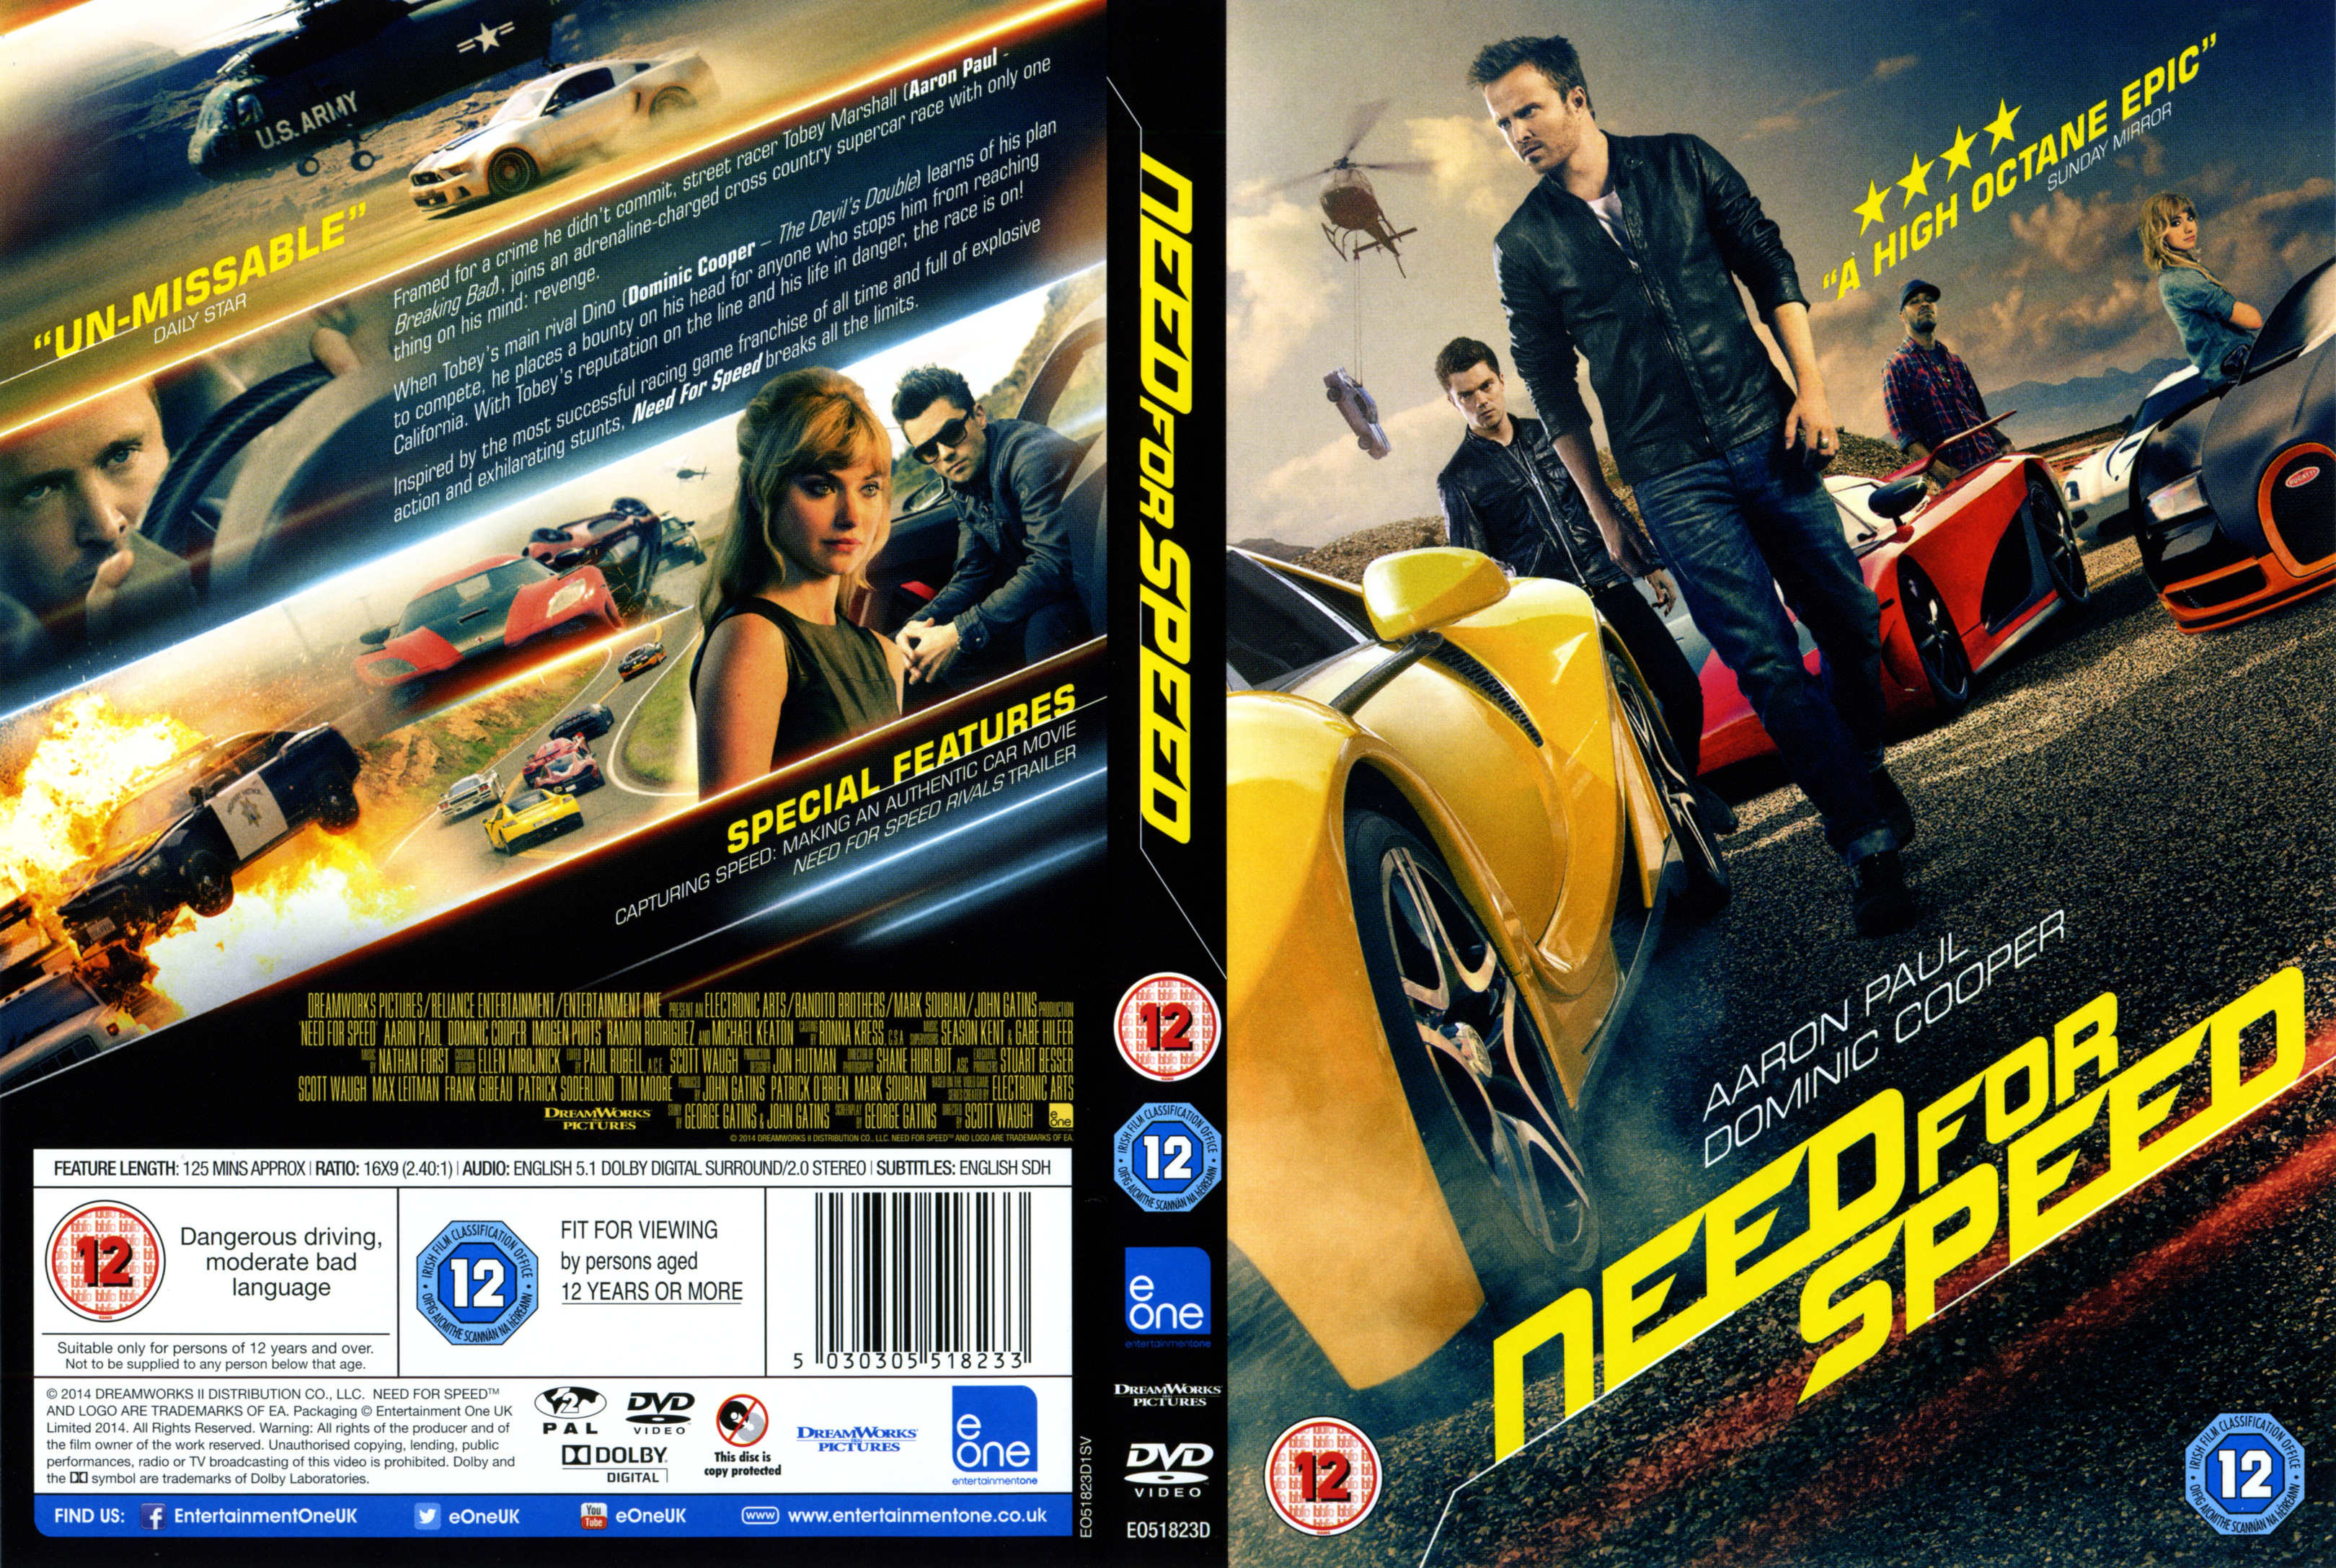 Need For Speed 2014 Dvd Covers Cover Century Over 500 000 Album Art Covers For Free